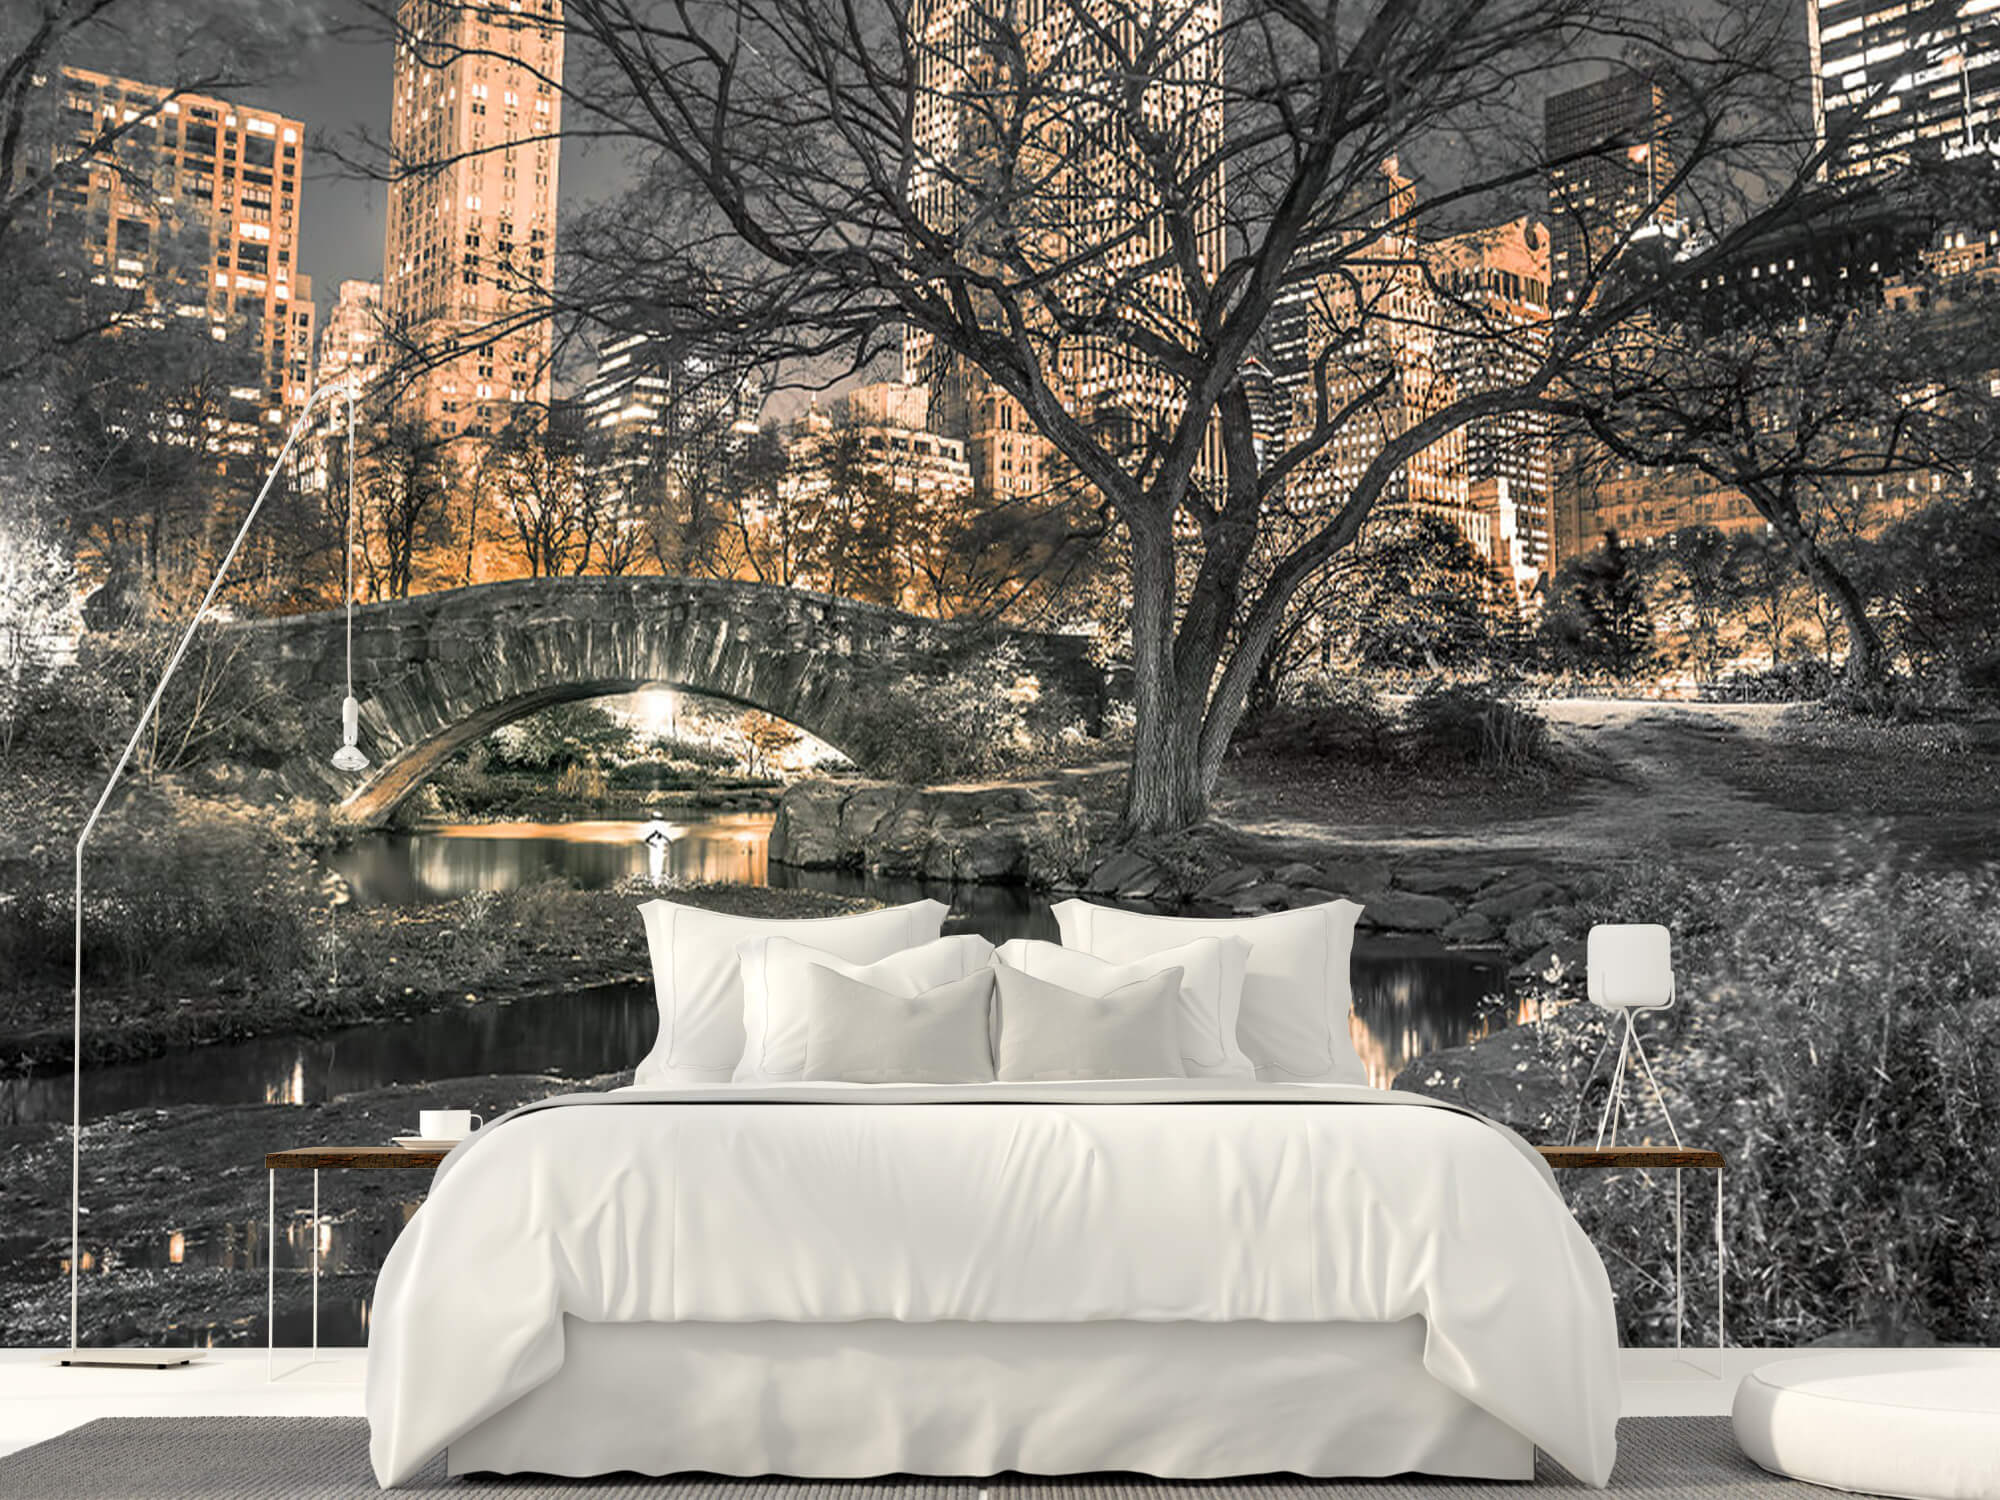 Central park in the evening 15